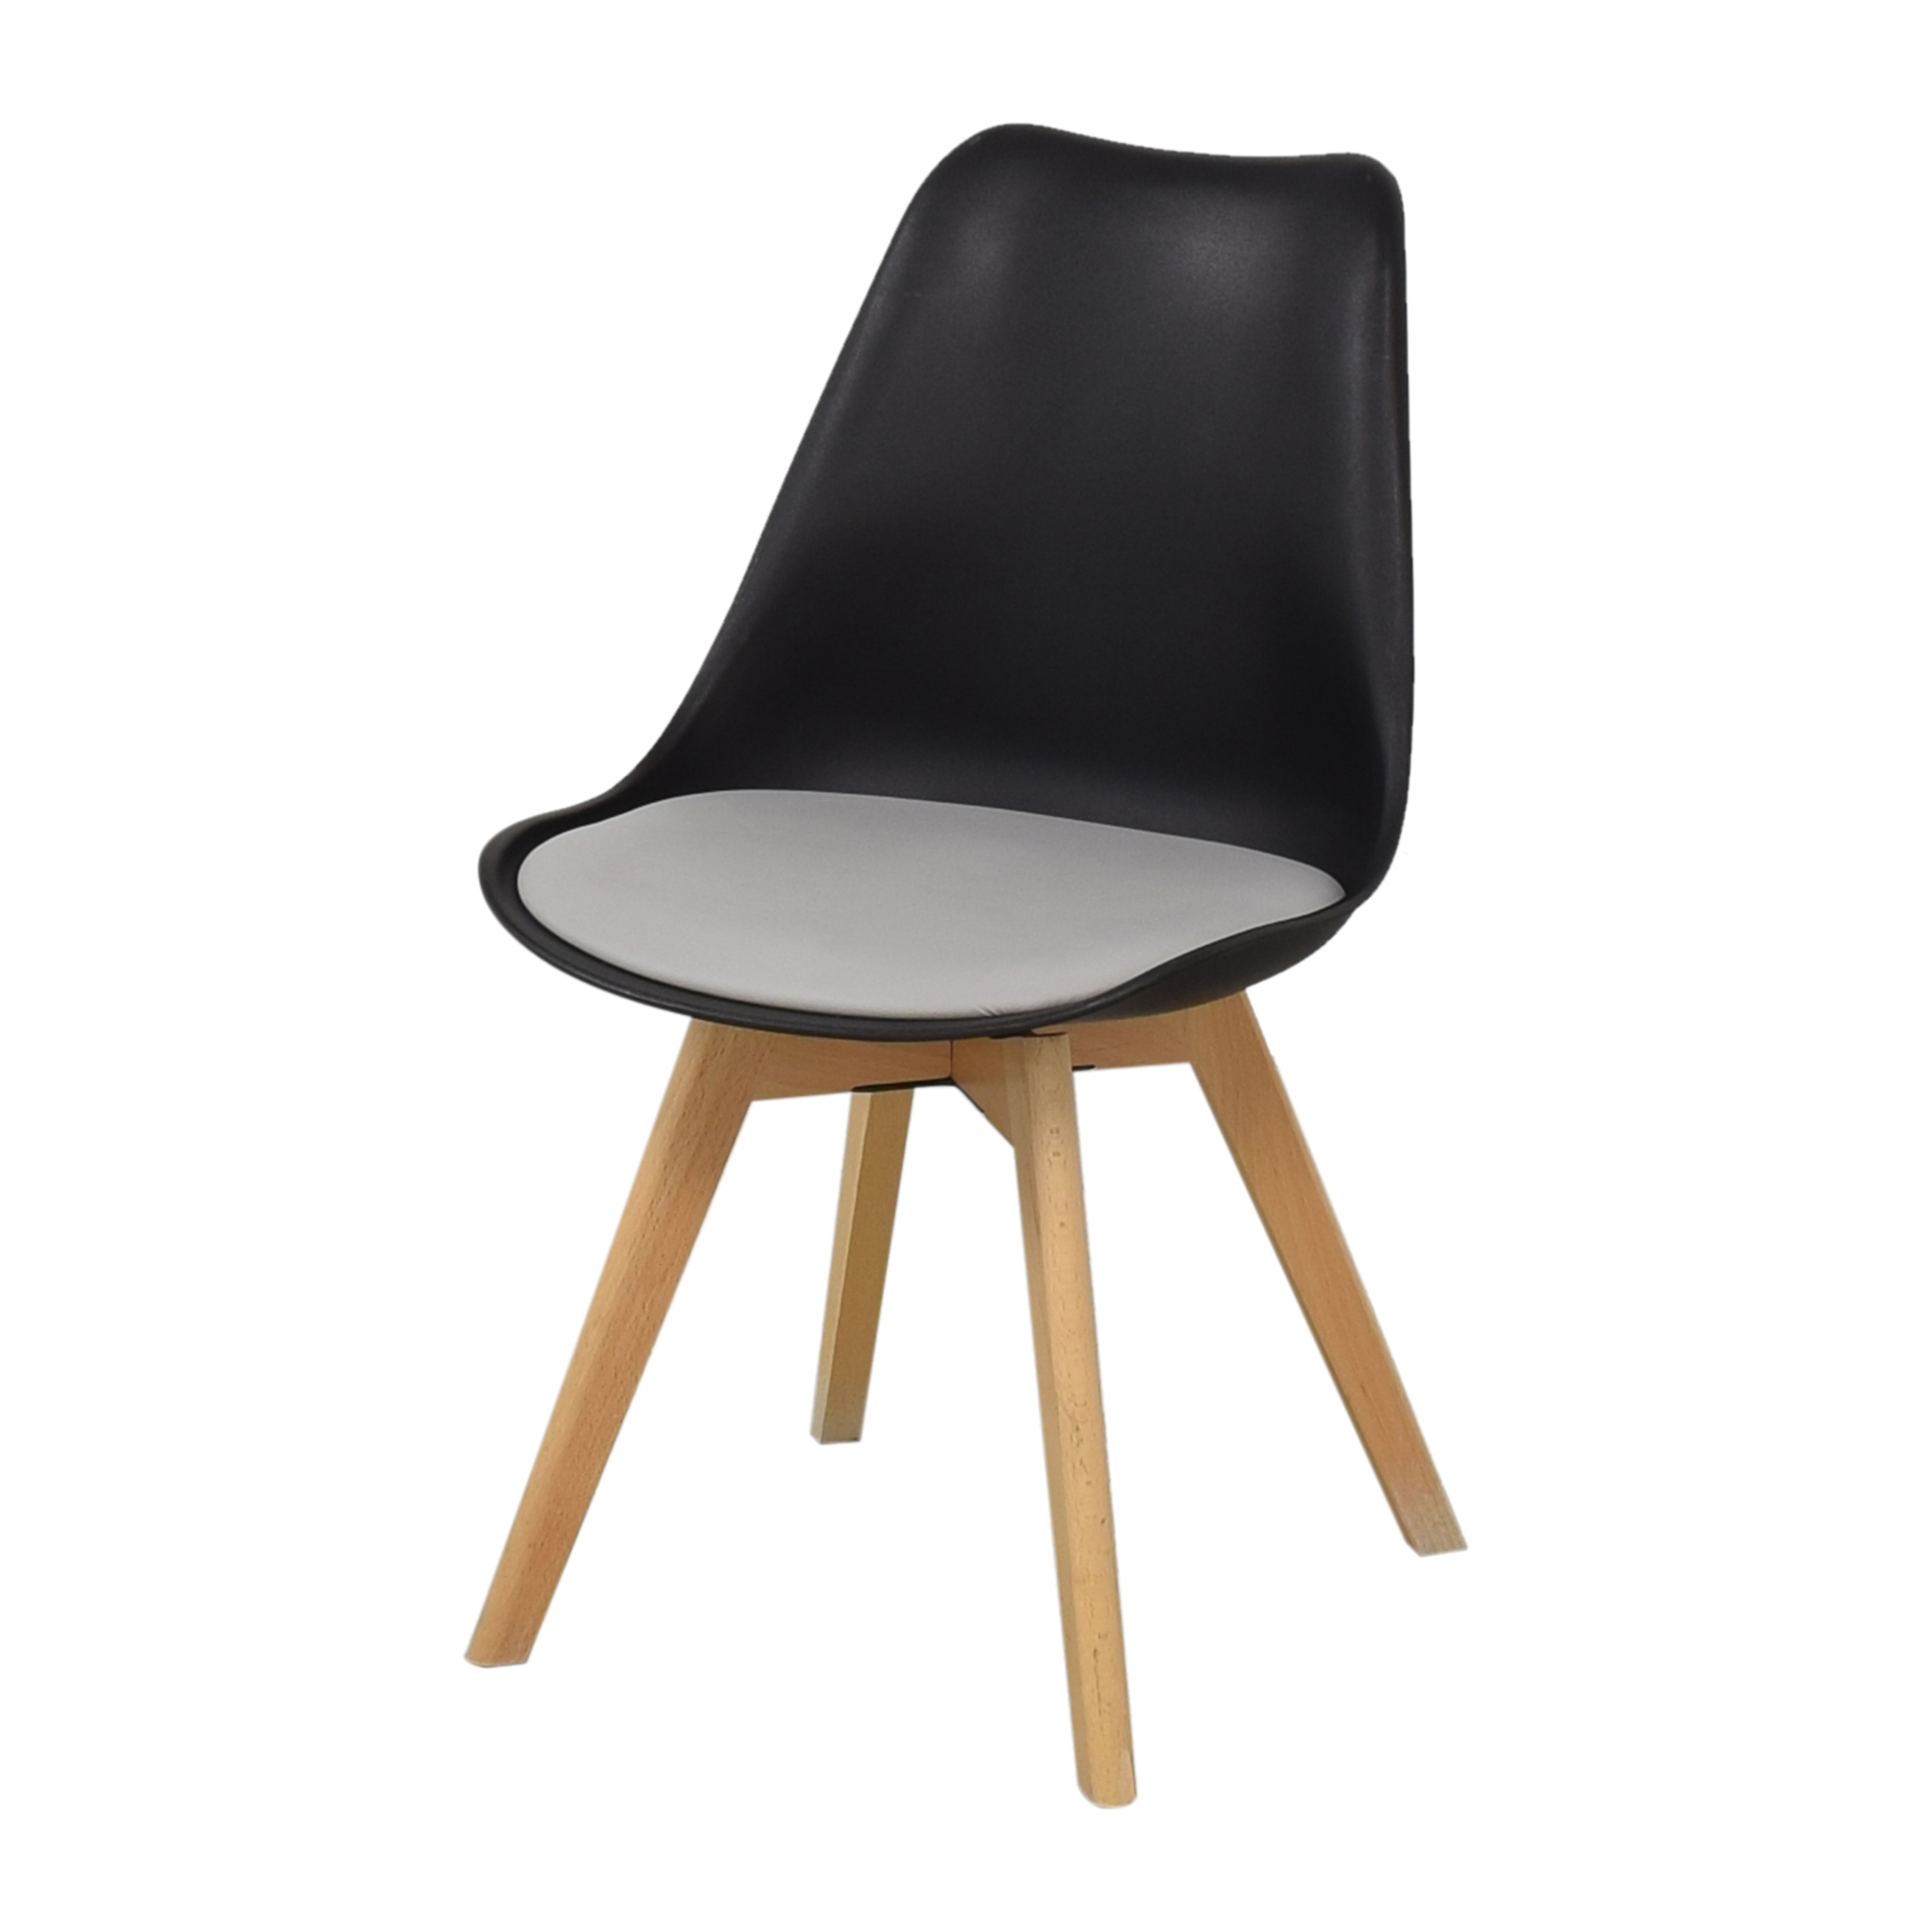 Black Molded Plastic Chairs with Wooden Legs Chairs